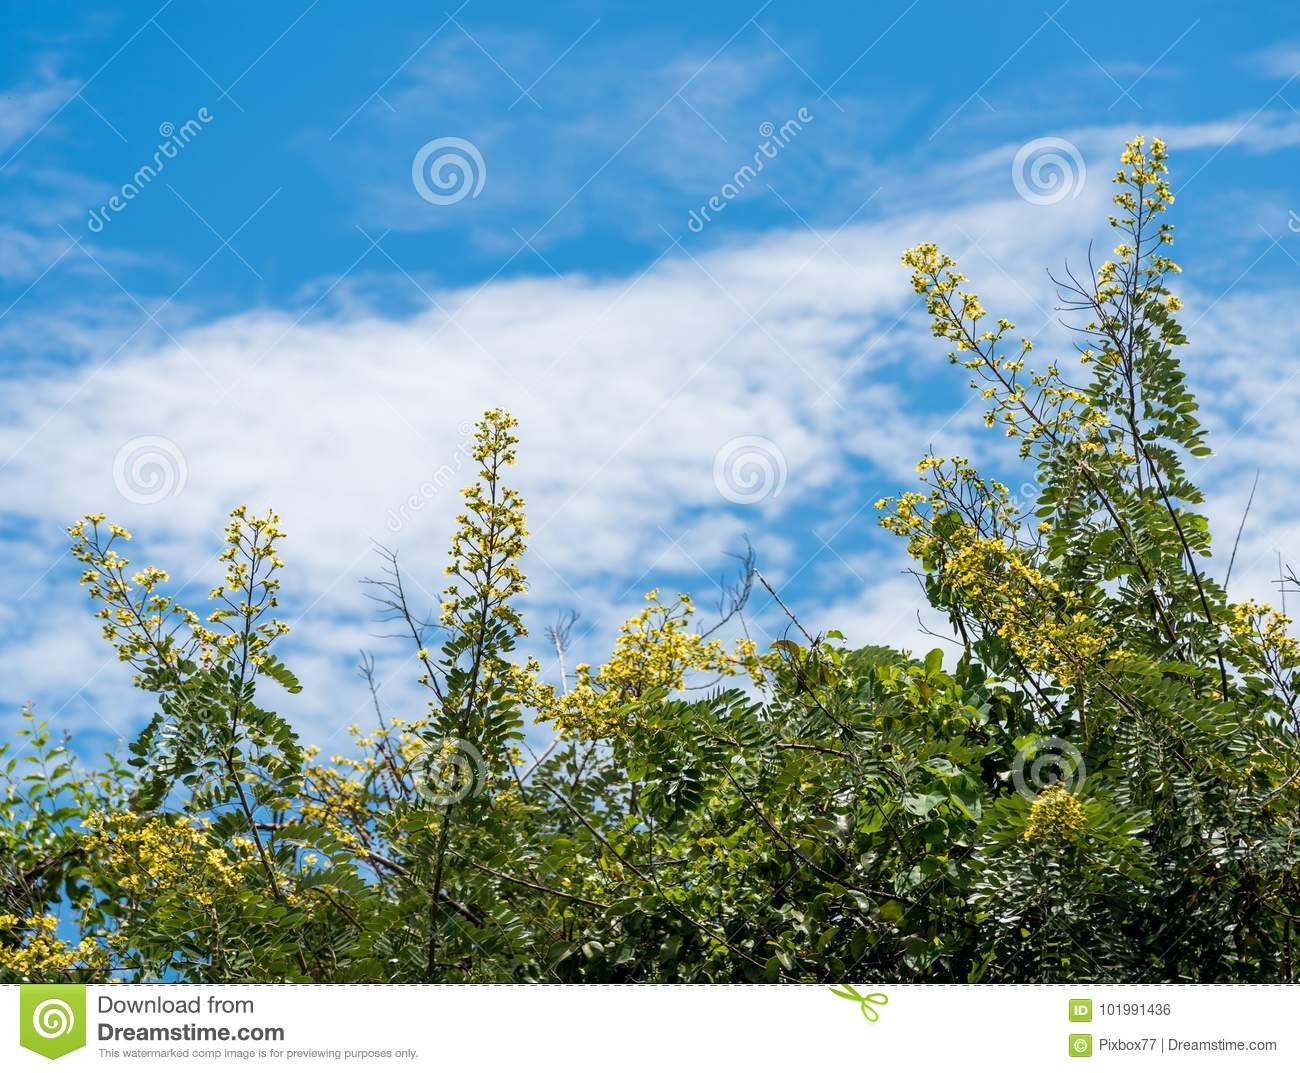 Flower of cassia tree with blue sky background stock photo image flower of cassia tree with blue sky background izmirmasajfo